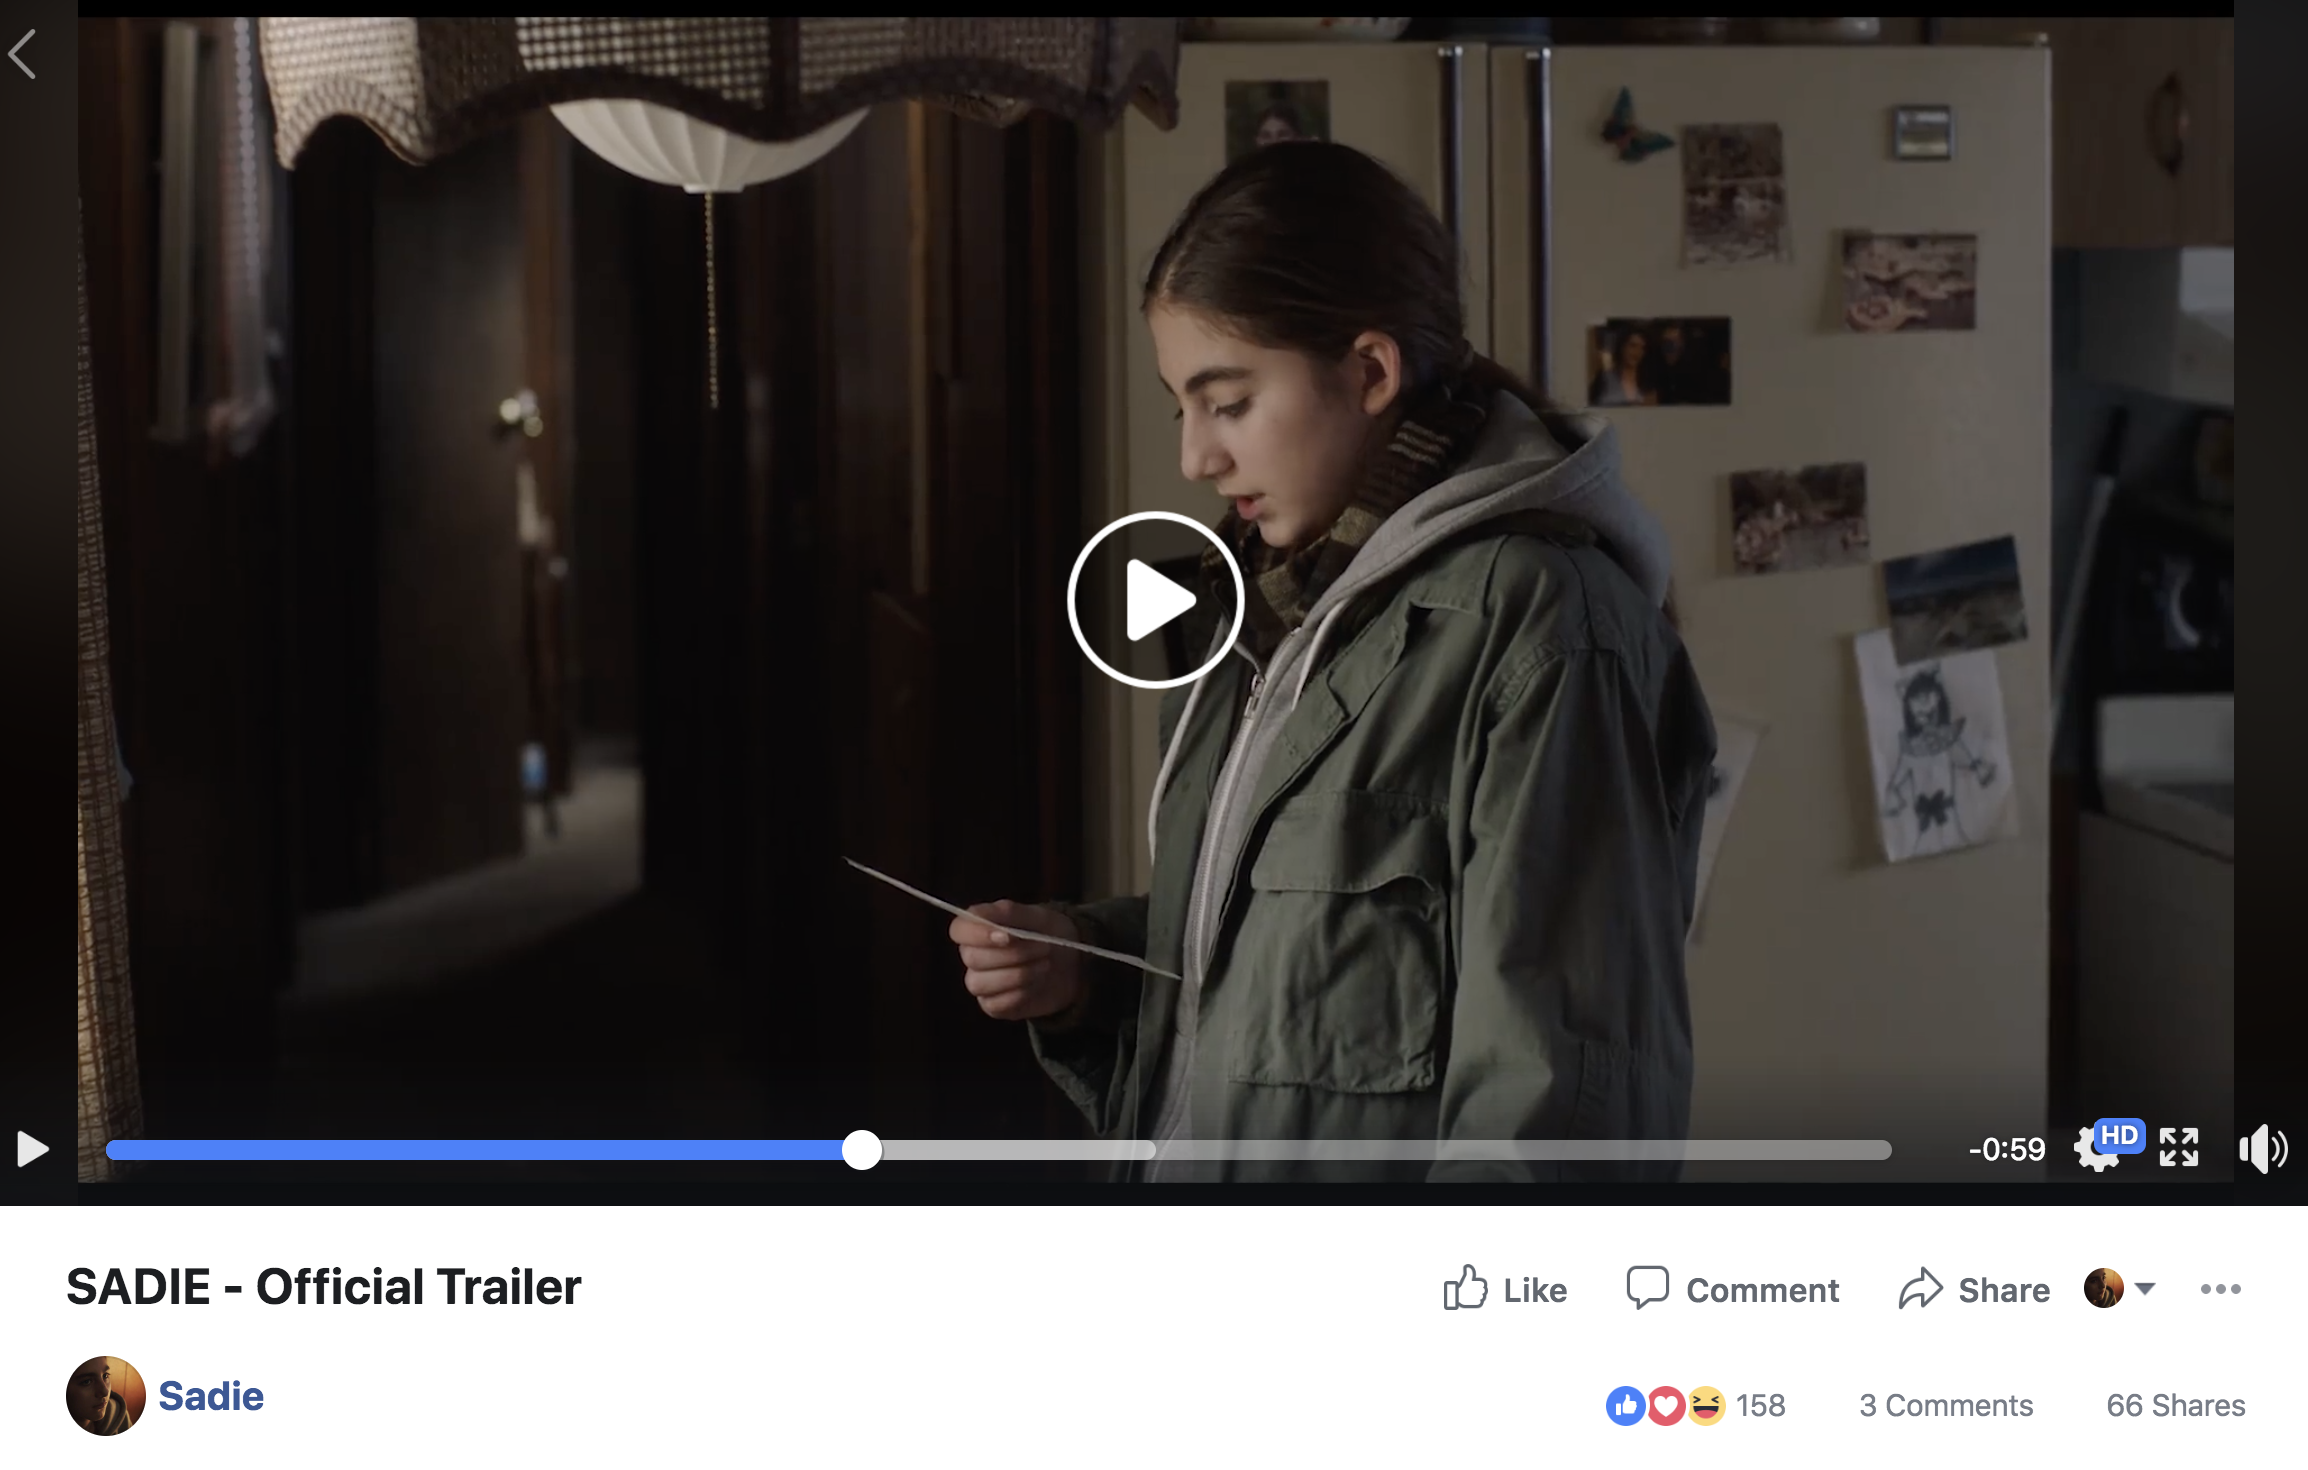 SADIE Trailer Facebook